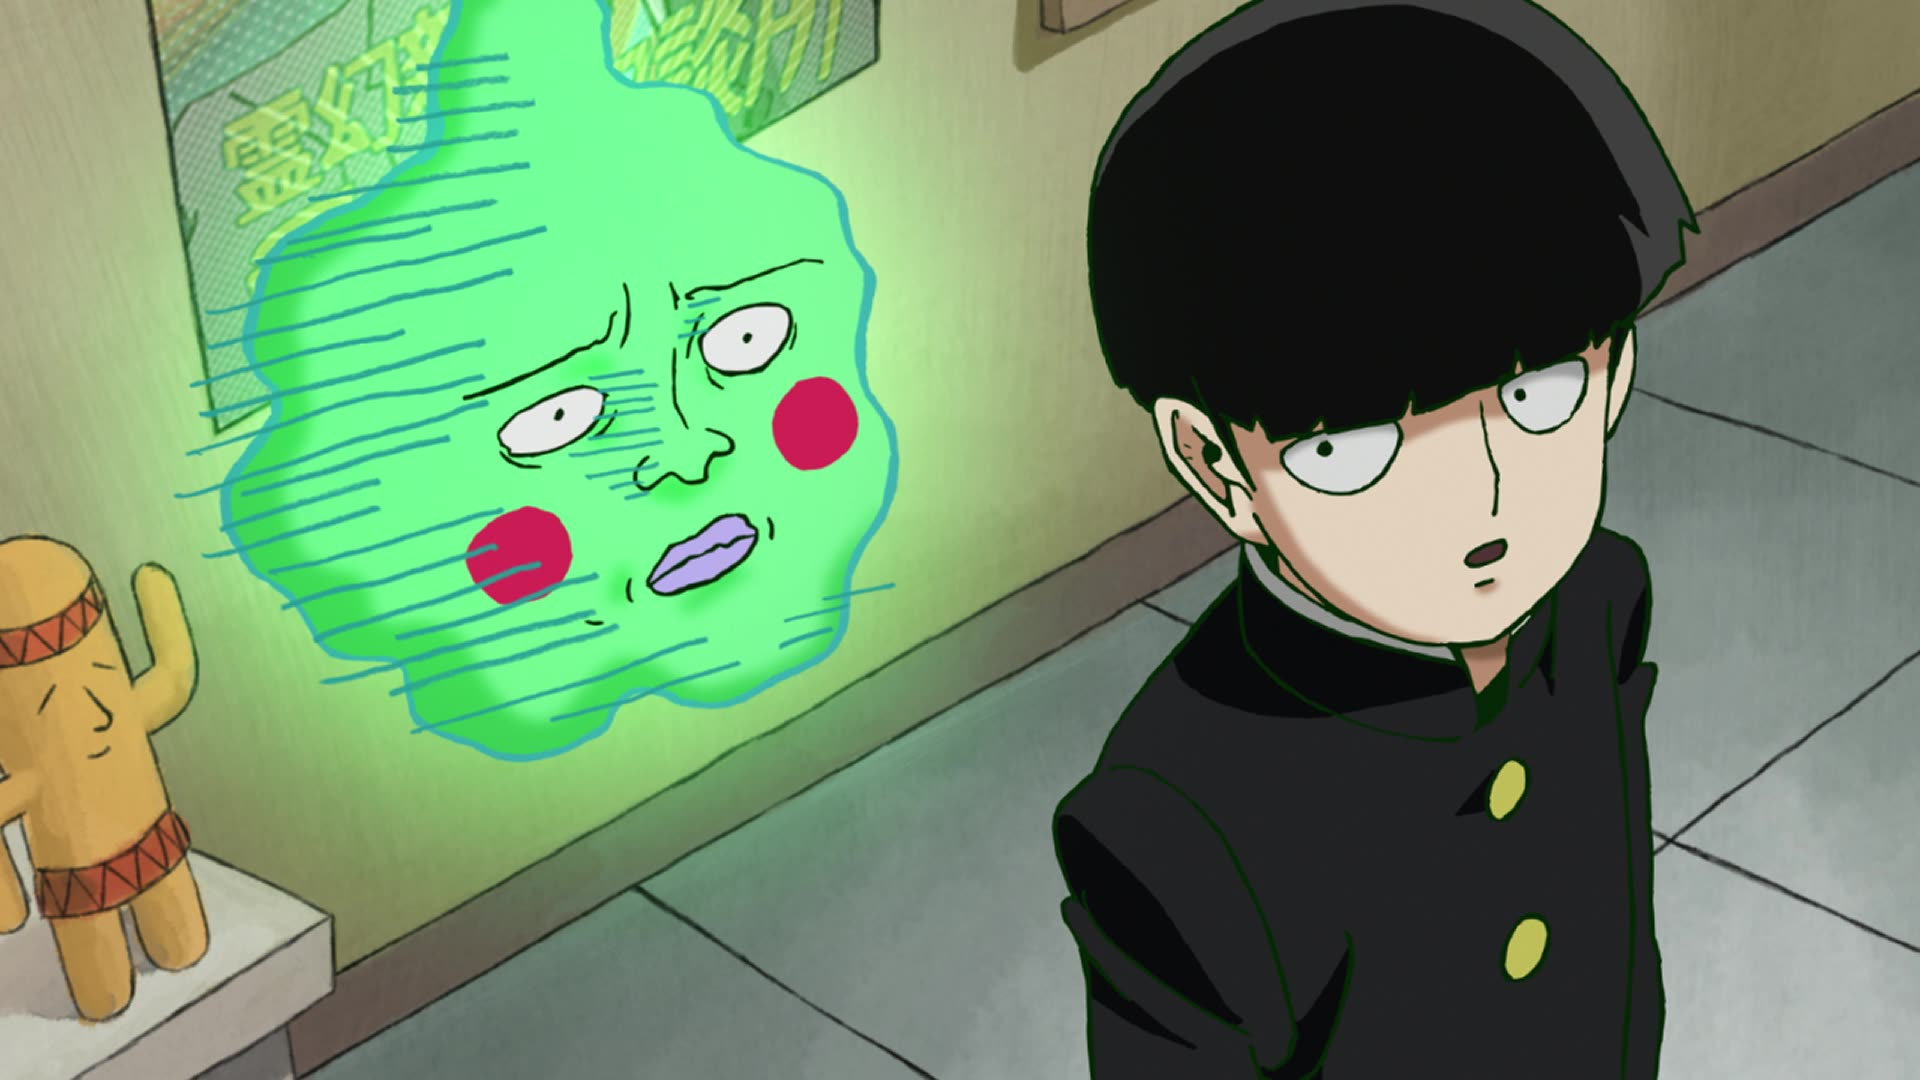 Mob Psycho 100 (English Dub) Episode 4, Idiots Only Event